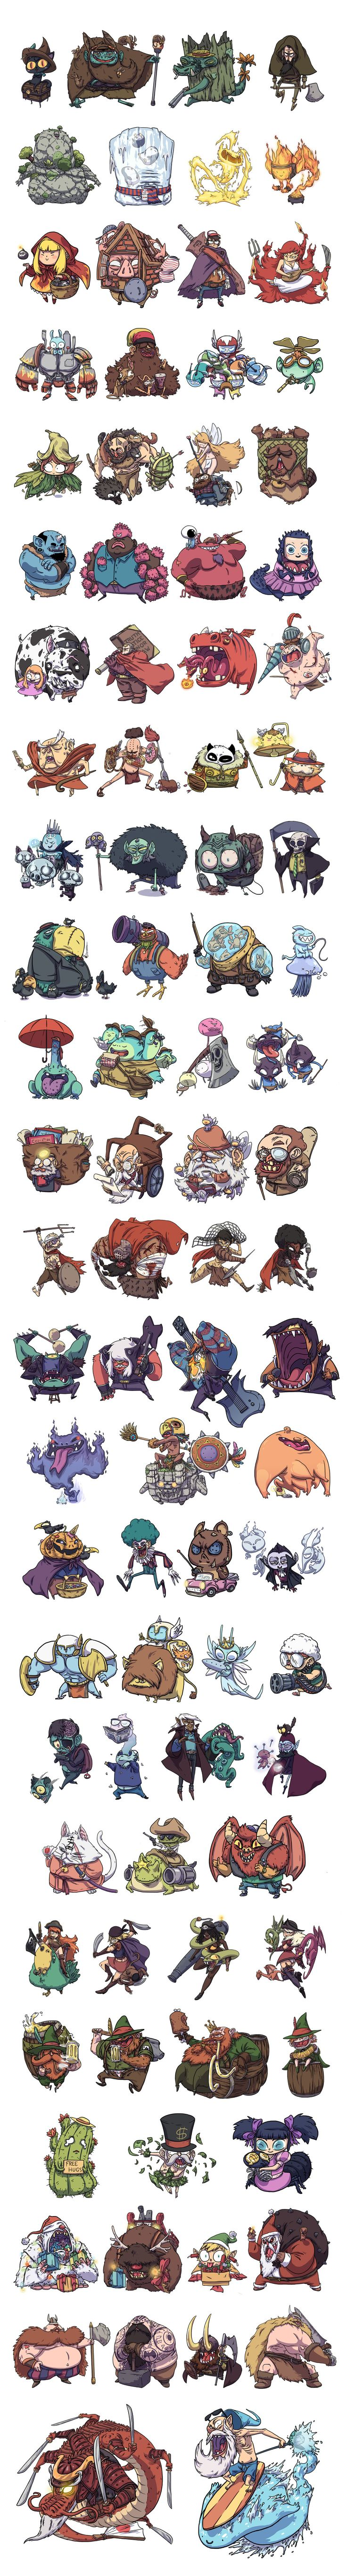 Character designs compilation by BattlePeach on DeviantArt